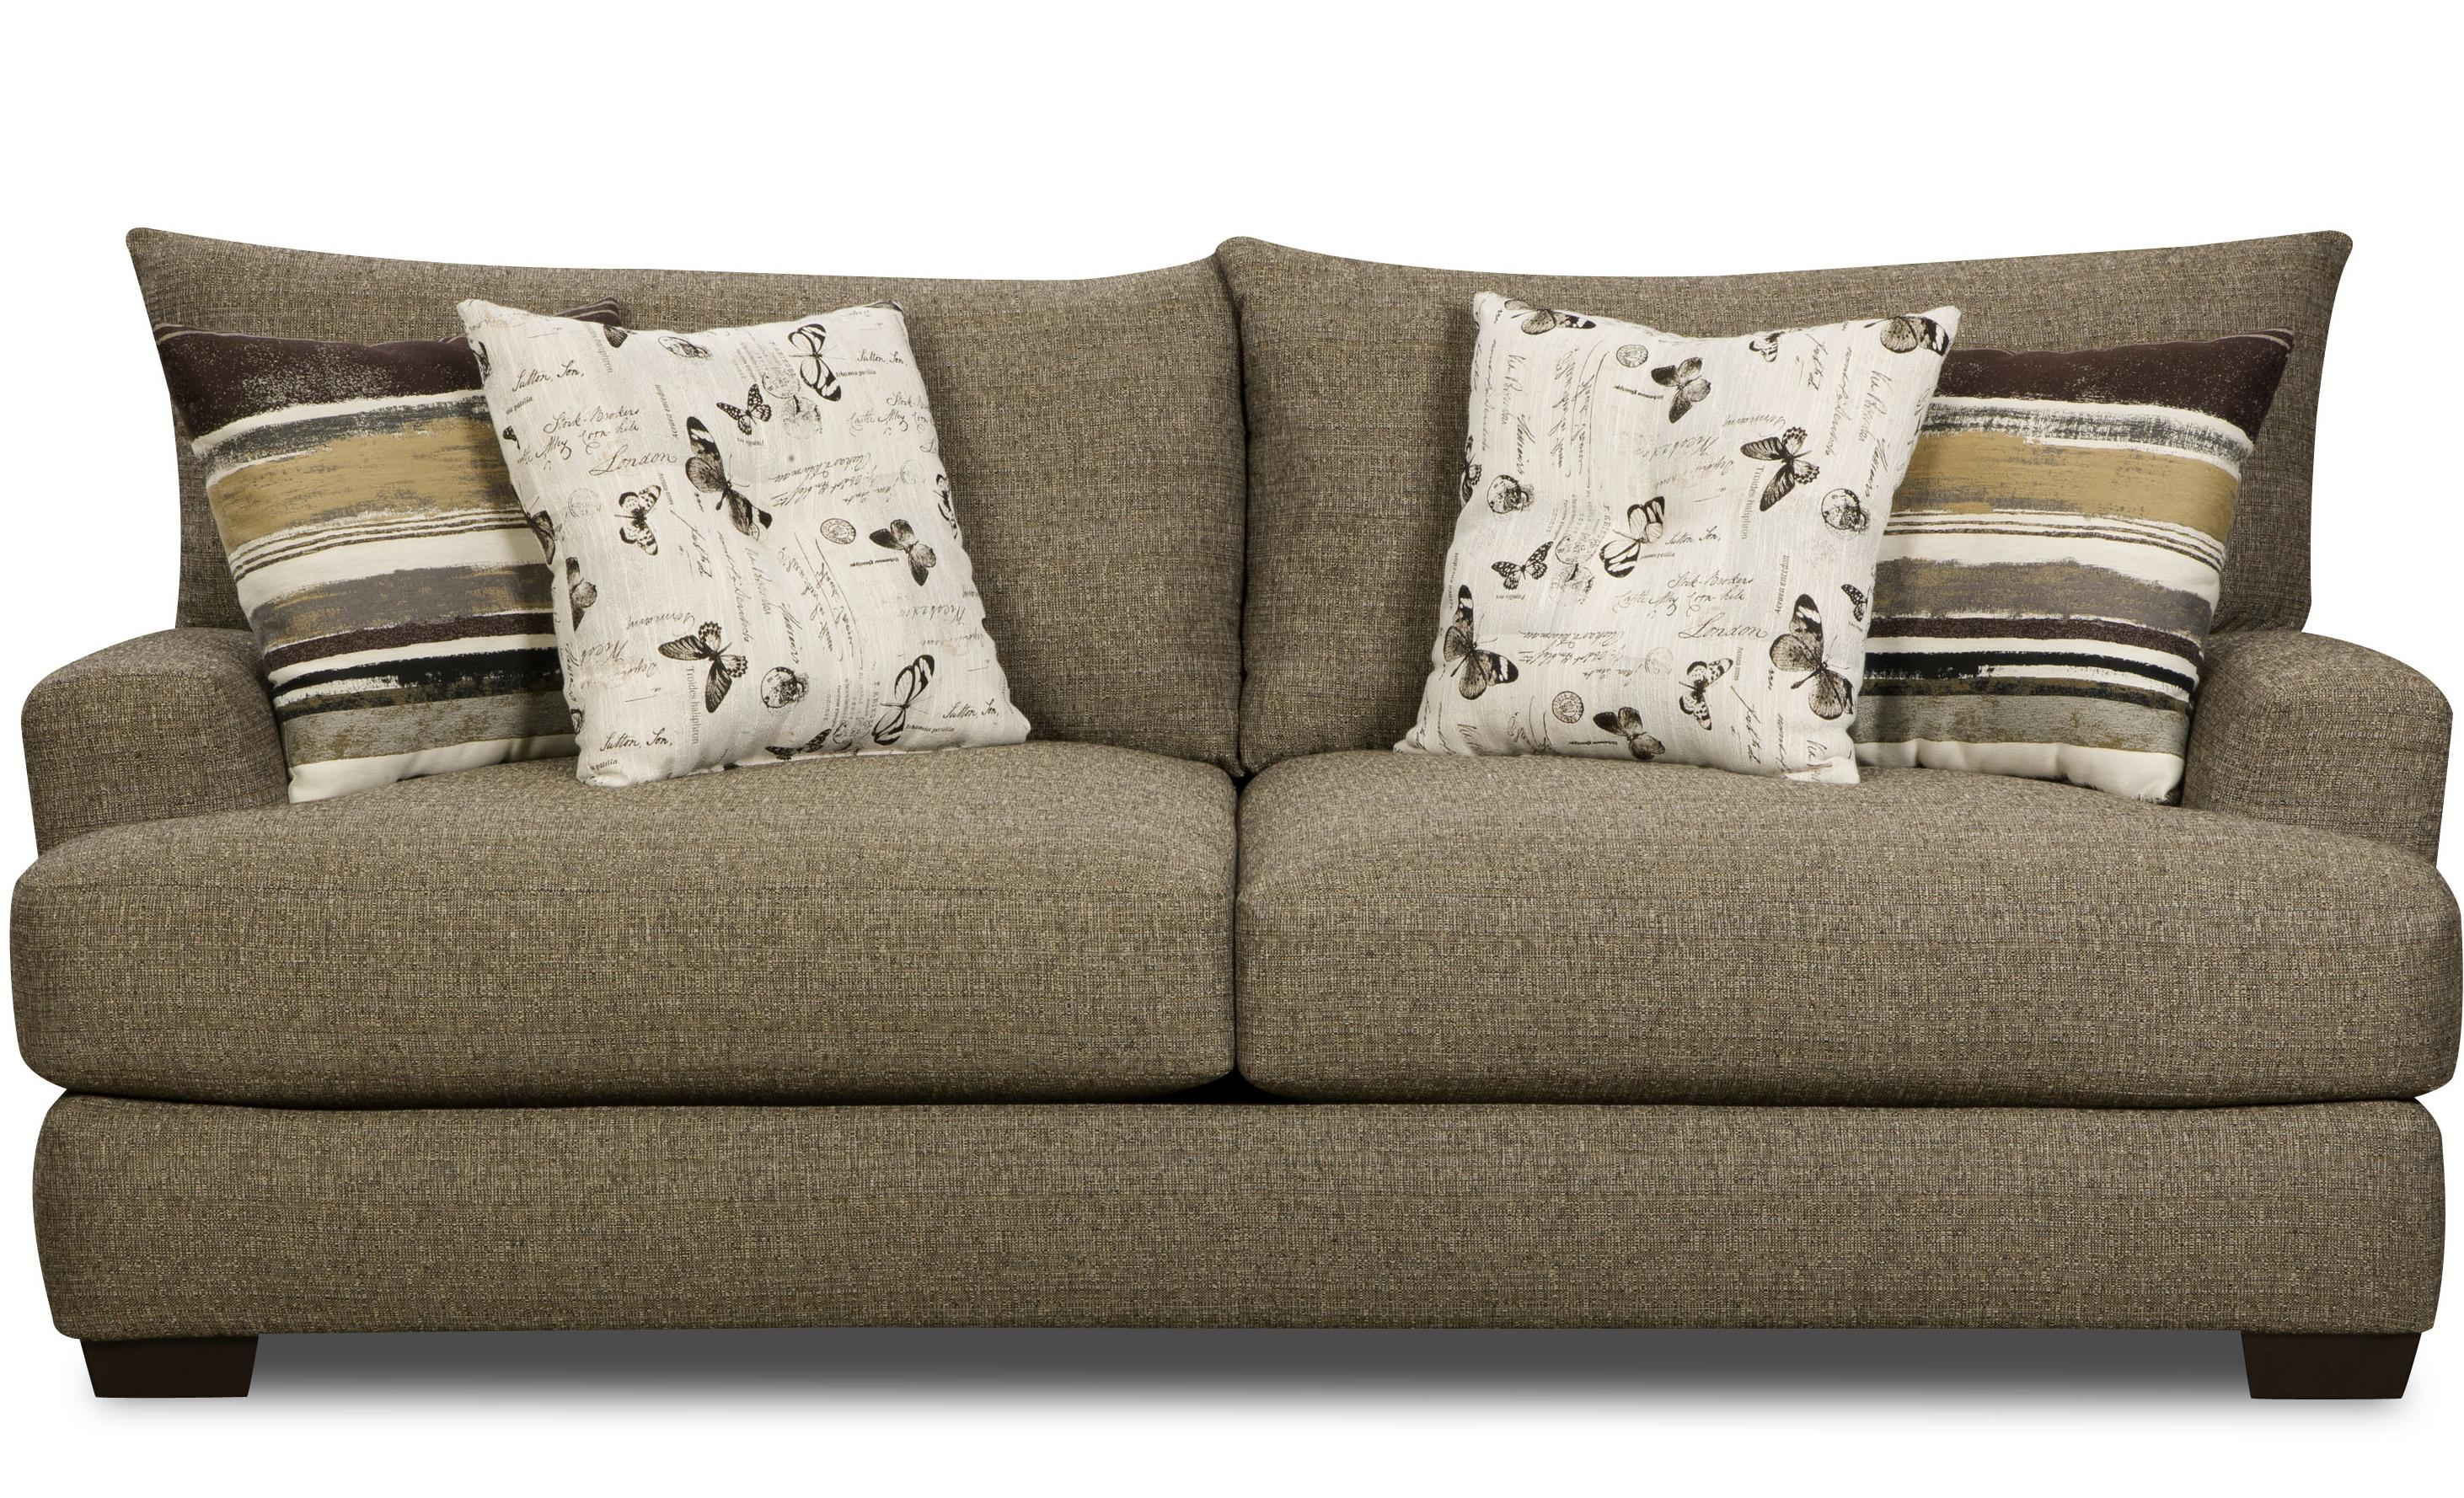 green gray vintage sofas sofa pillows